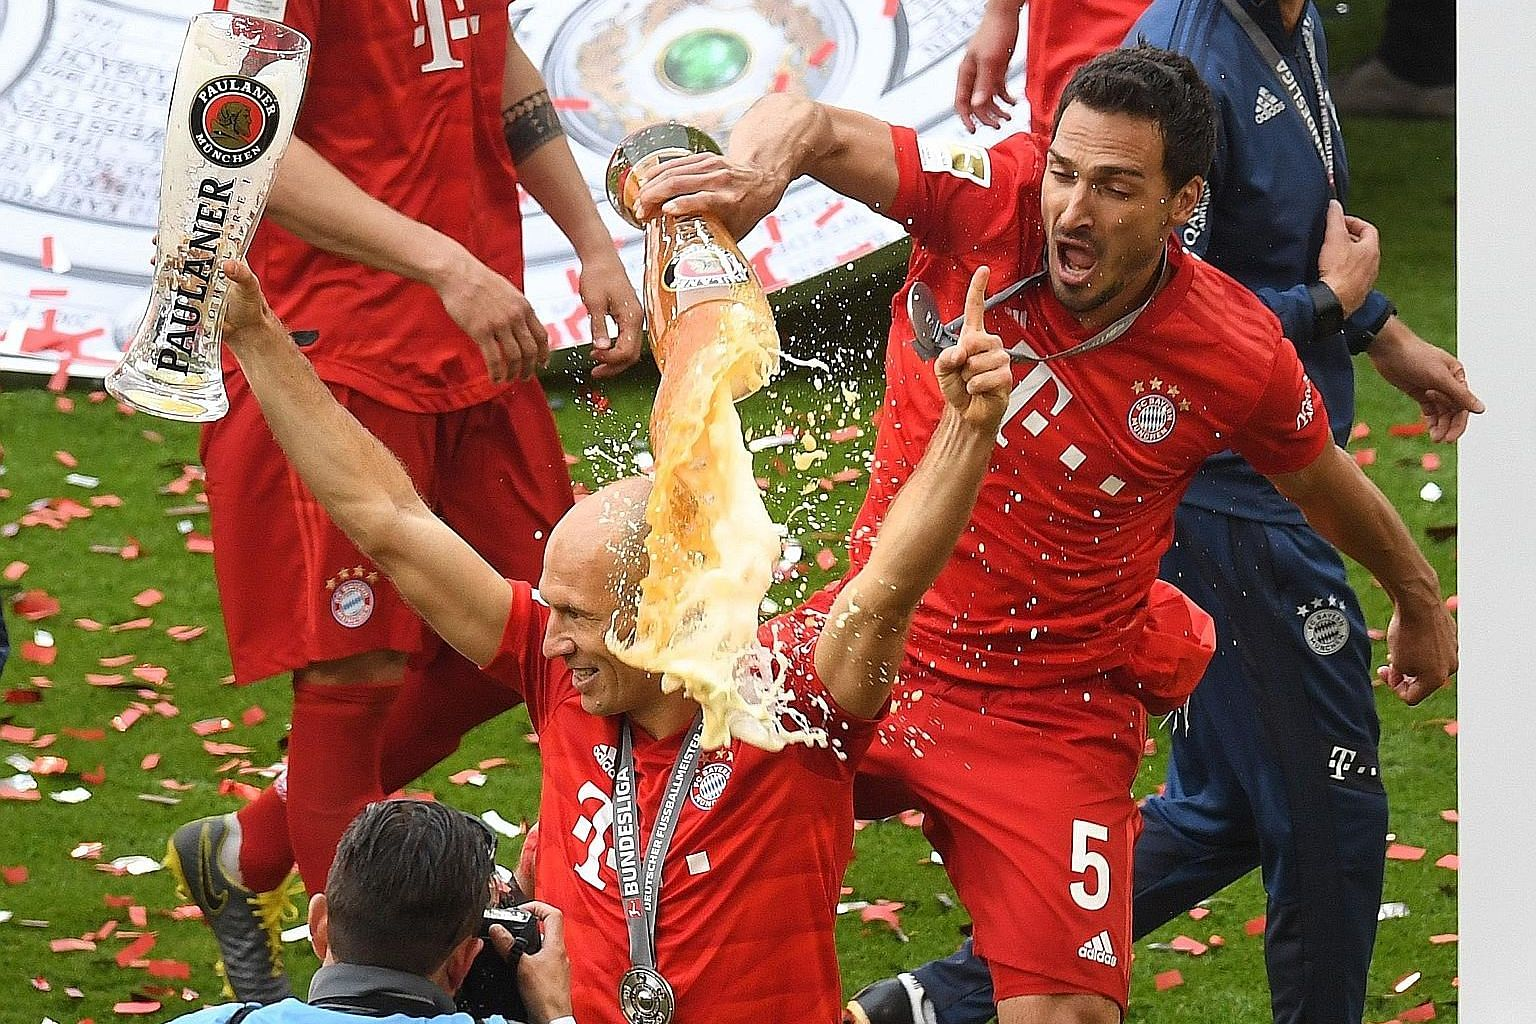 Bayern defender Mats Hummels pouring beer over departing veteran midfielder Arjen Robben after the team thumped Frankfurt at home to win the title on Saturday. PHOTO: AGENCE FRANCE-PRESSE